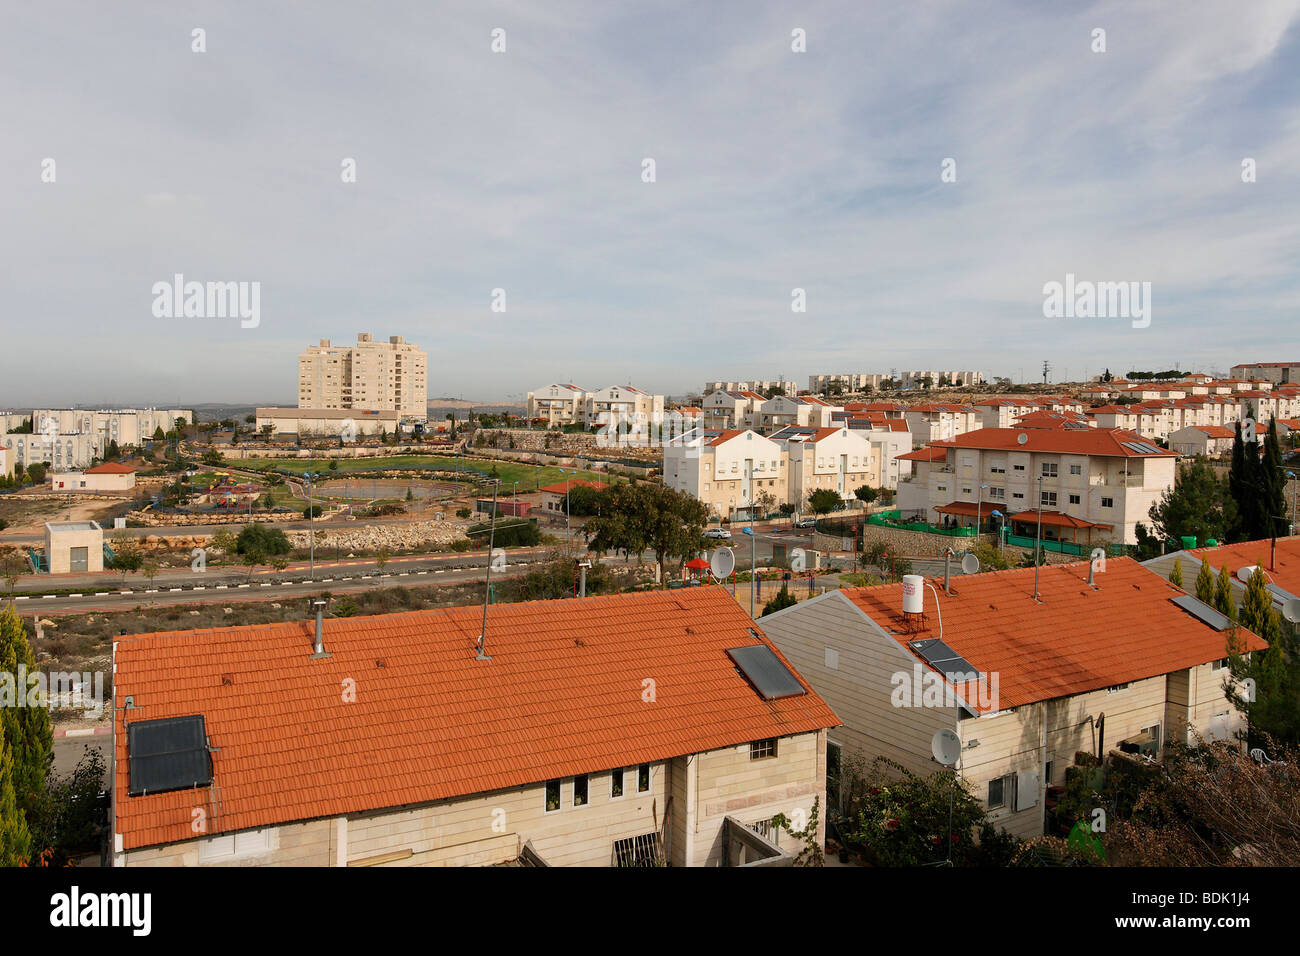 Samaria, Ariel founded in 1978, a city since 1998 - Stock Image